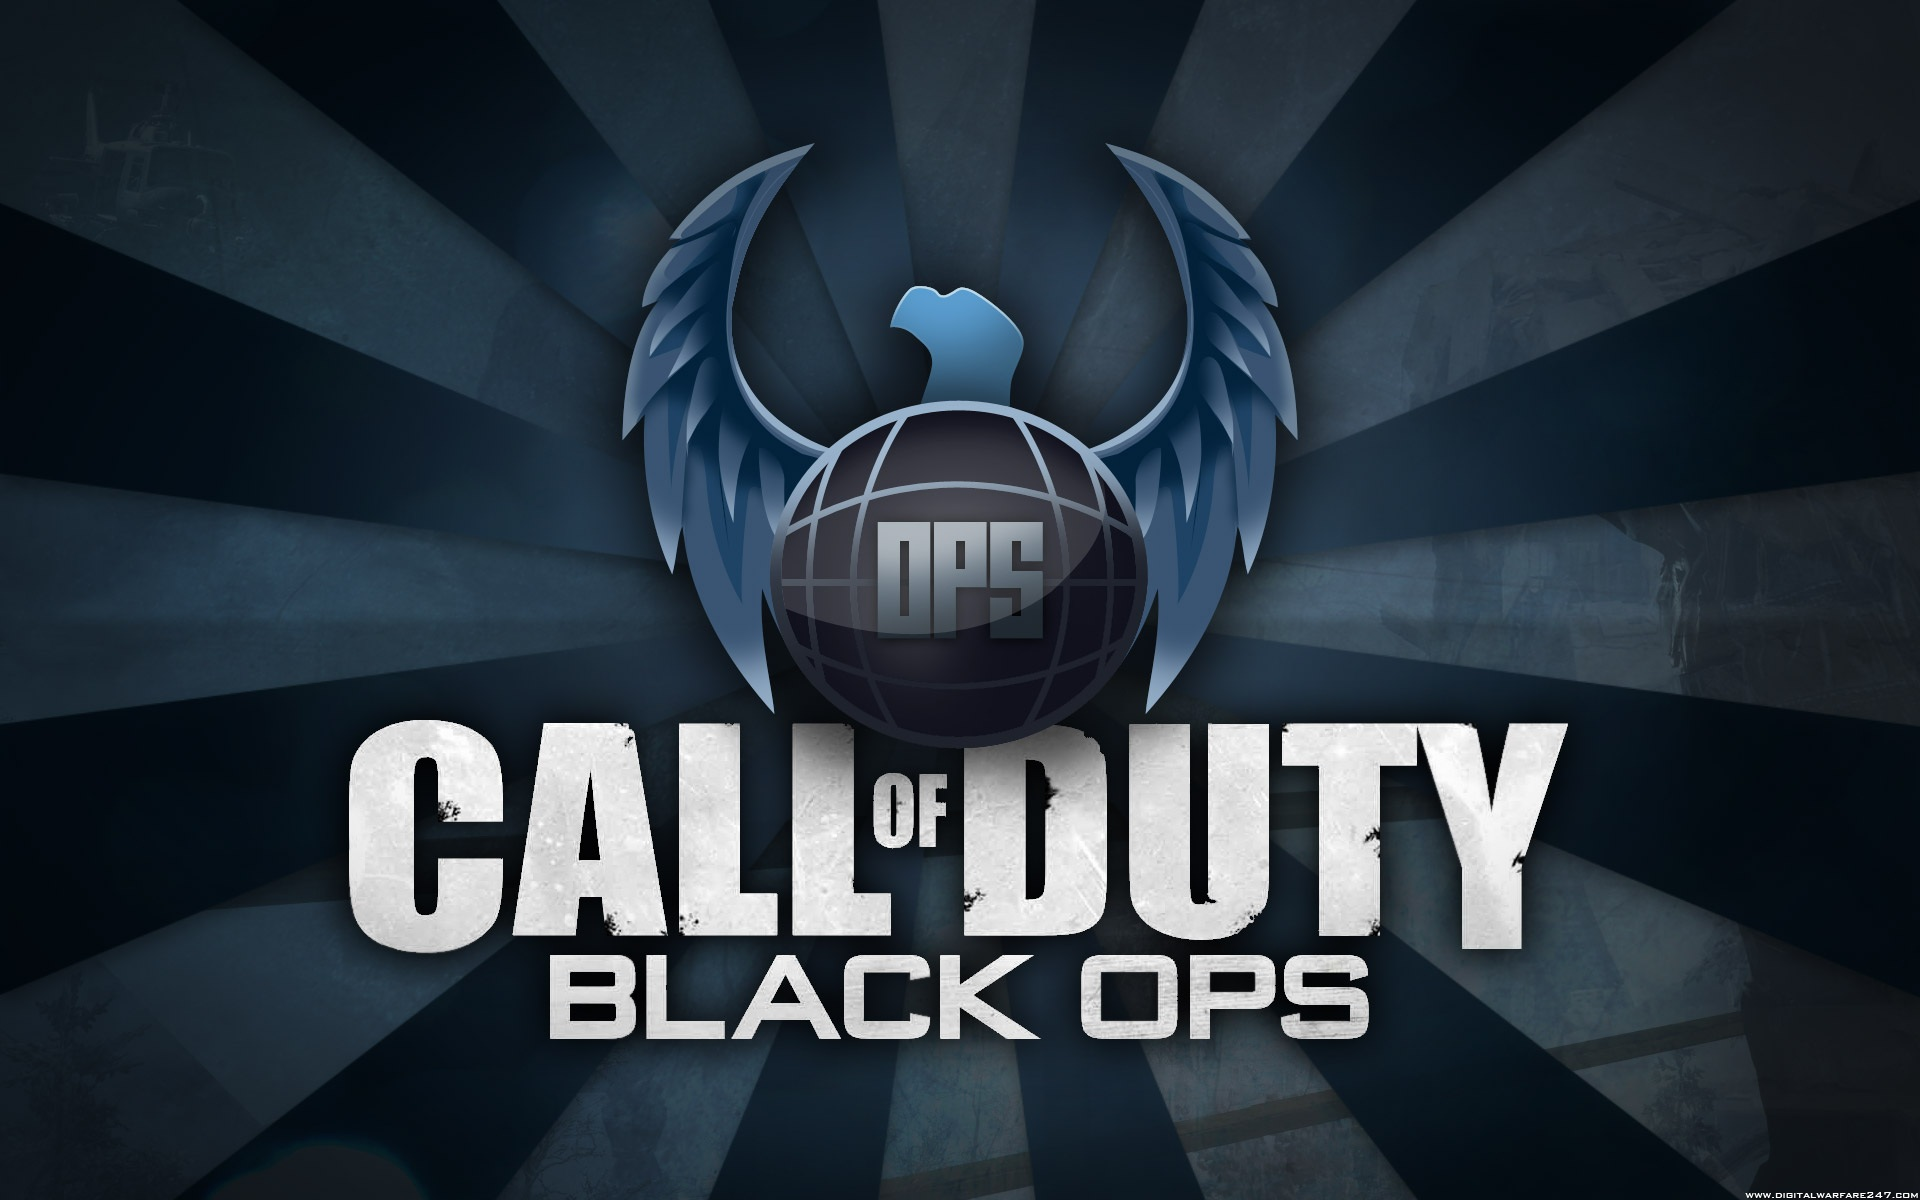 cod black ops wallpaper Wallpapers hd black ops